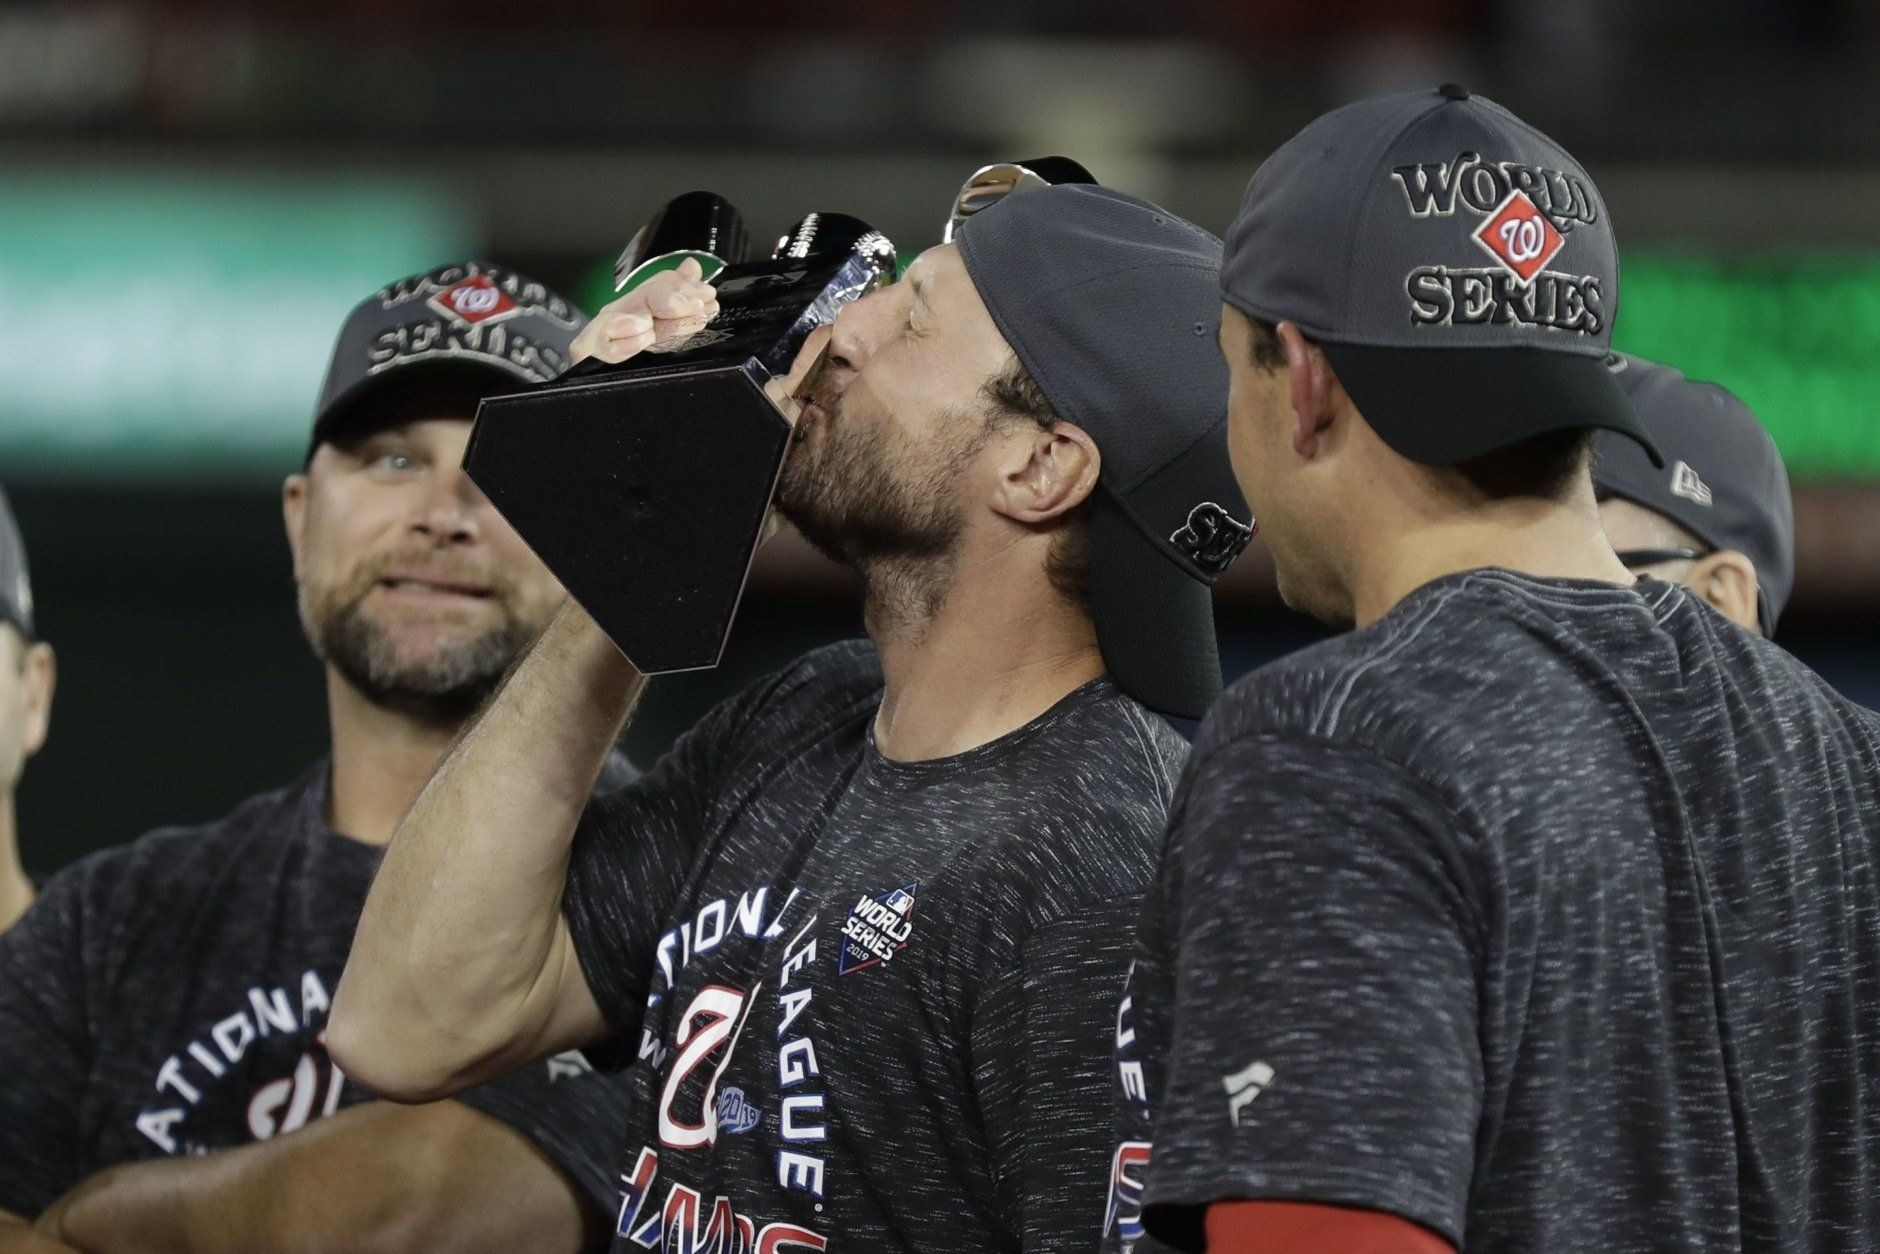 Washington Nationals' Max Scherzer kisses the NLCS trophy after Game 4 of the baseball National League Championship Series against the St. Louis Cardinals Tuesday, Oct. 15, 2019, in Washington. The Nationals won 7-4 to win the series 4-0. (AP Photo/Jeff Roberson)